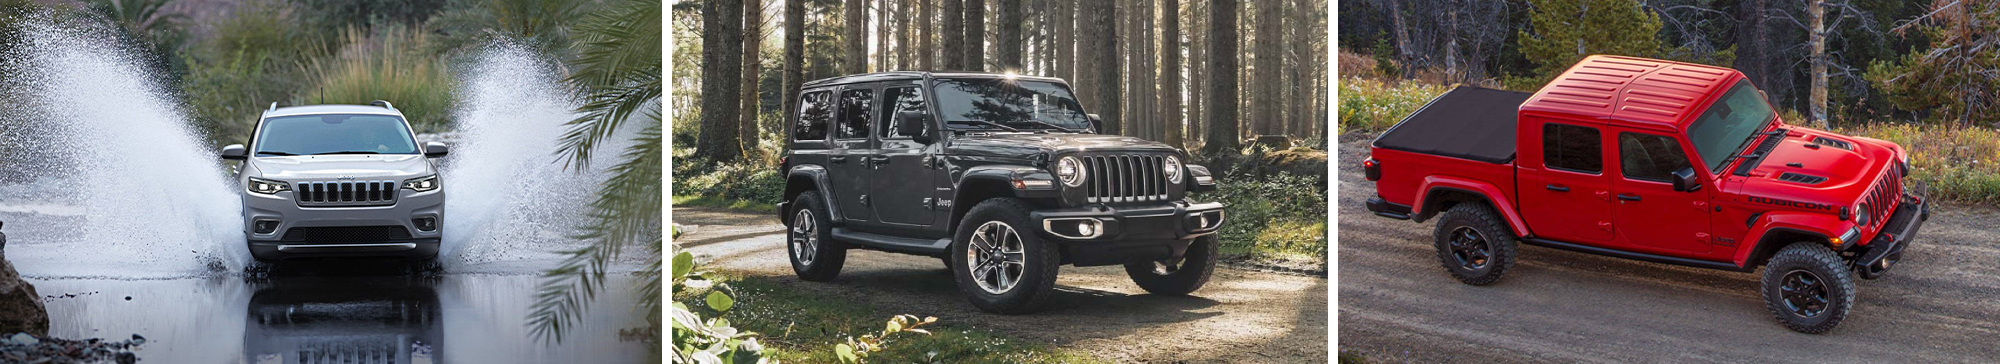 Jeep PA for sale